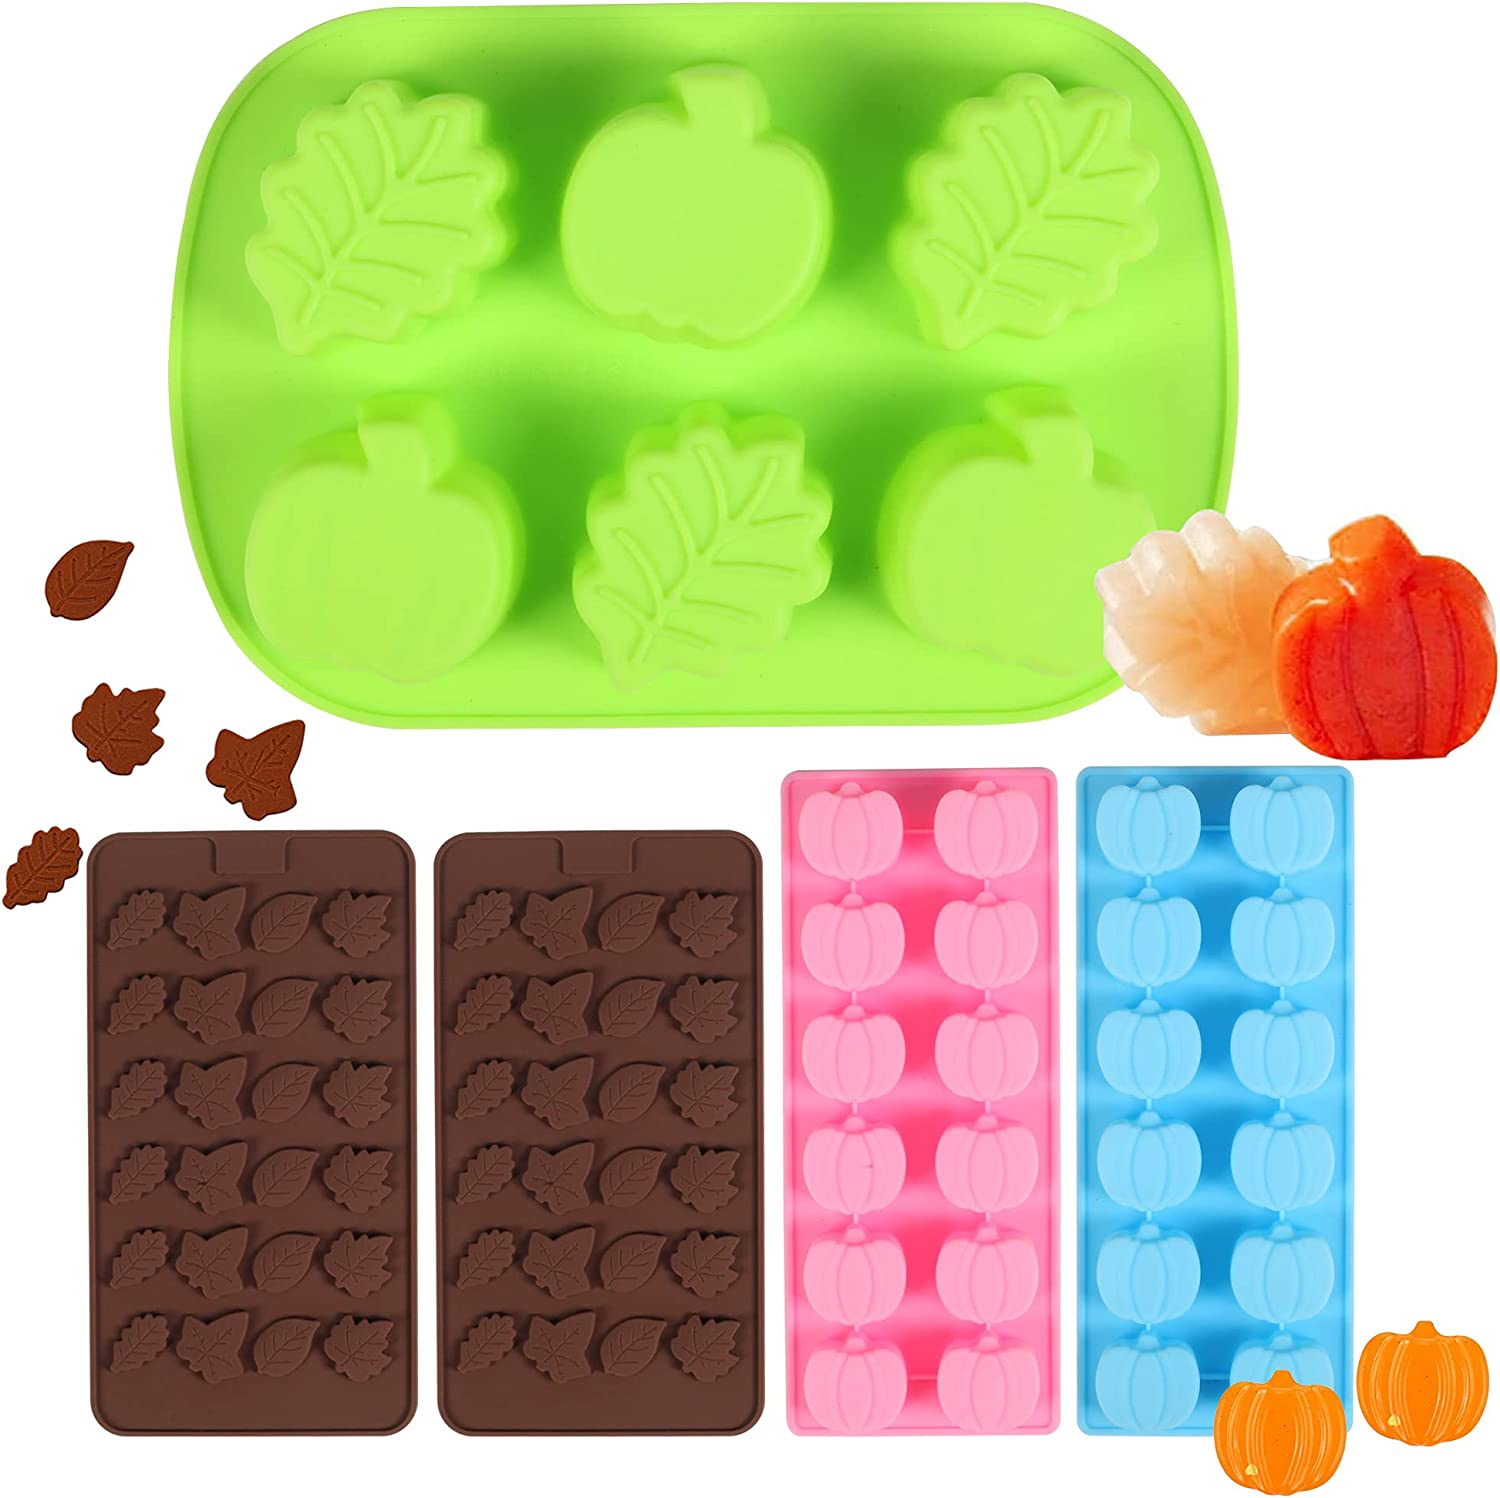 Pumpkin Silicone Molds Fall Leaves Chocolate Fondant Mold Ice Cube Cupcake Mold for Thanksgiving Halloween Candy Muffin Chocolate Candle Soap Baking Tools, 5 Pieces Chocolate Molds